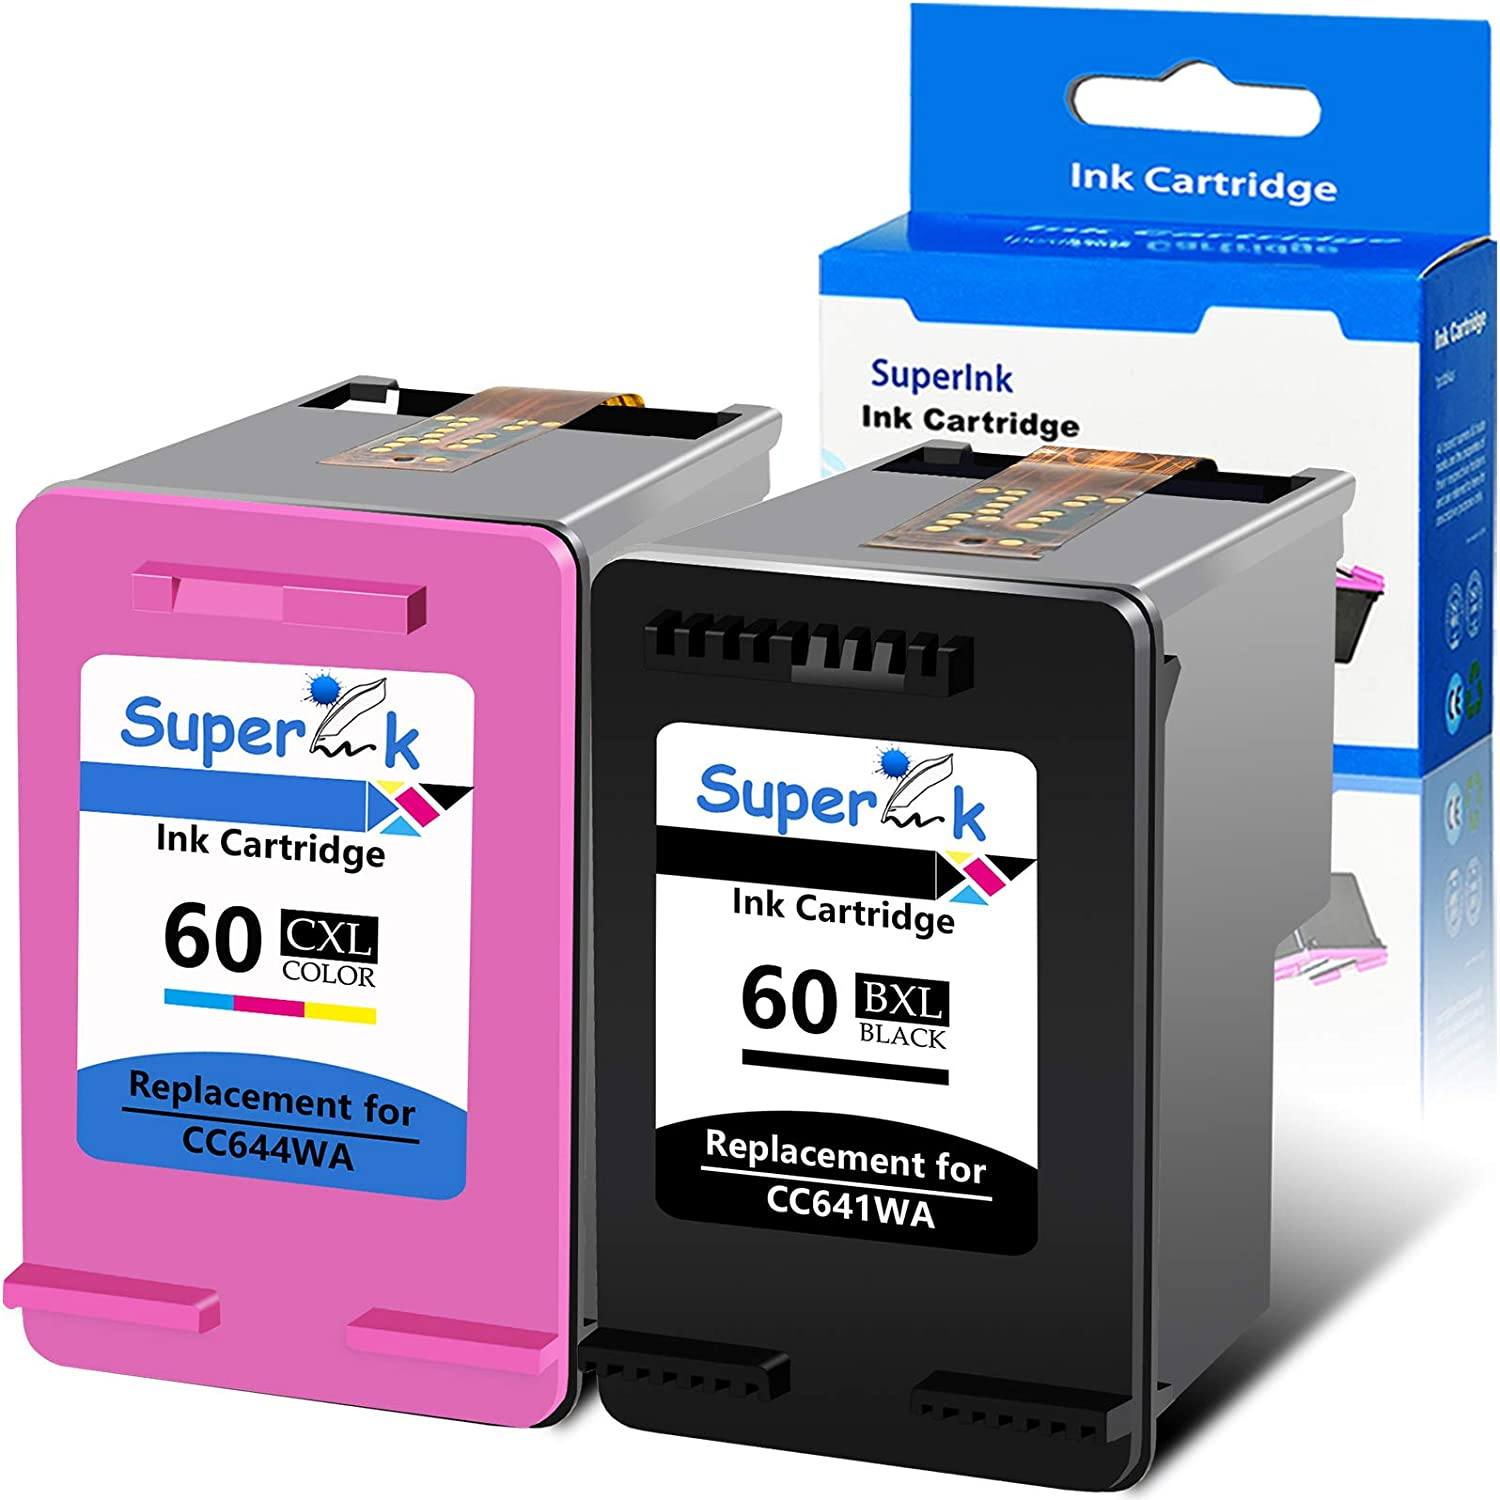 SuperInk 2 Pack Remanufactured Ink Cartridge Compatible for HP 60 60XL CC641WA CC644WA (1 Black,1 Tri-Color) Replacement for Deskjet D1660 D1663 PhotoSmart C4600 C4610 Envy 100 110 All-in-One Printer